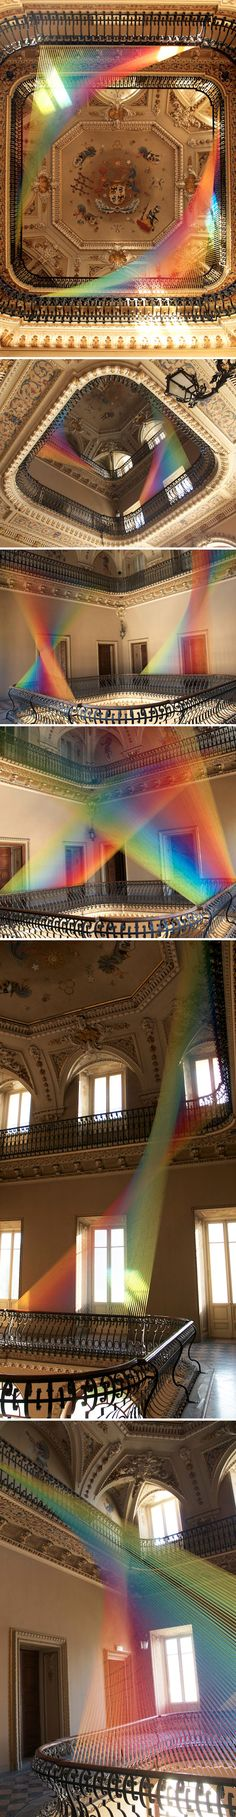 Unbelievable thread installation by Mexican artist Gabriel Dawe.